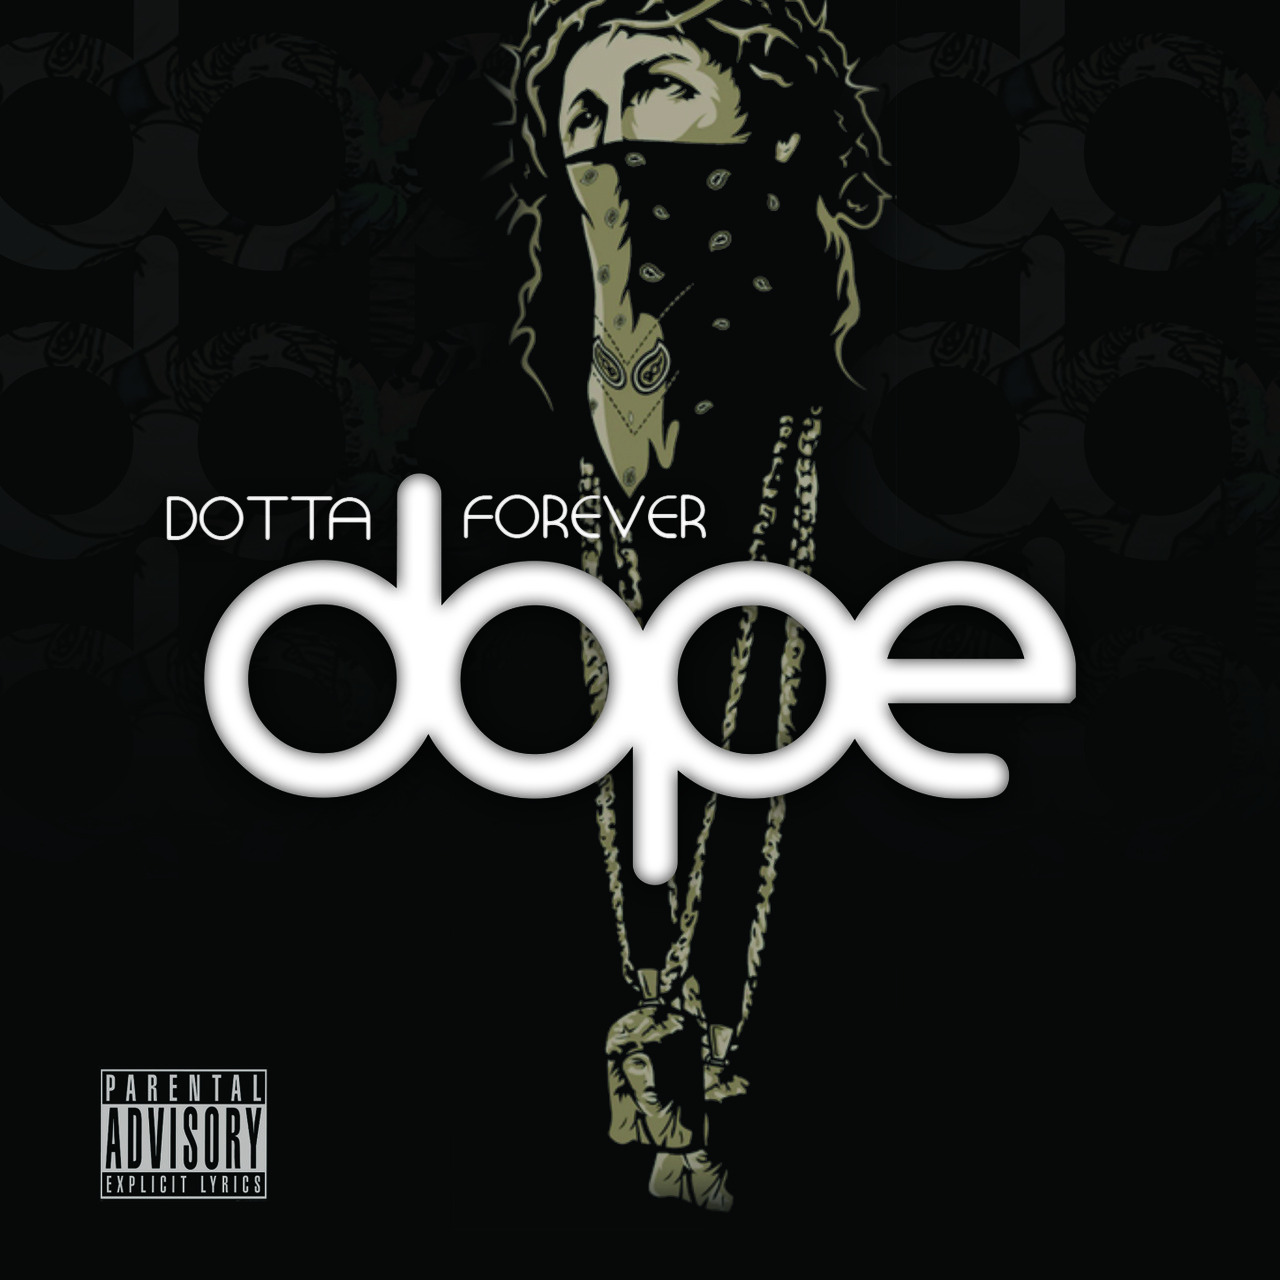 tornadoalleymusic:  DOTTA - 'FOREVER DOPE' (LP) on BANDCAMP now!  Click the pic, it'll take ya right over there to cop the new LP from DOTTA. Co-Produced by our man, GD HARPO, this is another certified dope #ATFU endeavor. We ain't for the talkin…the music speaks for itself. We stay forever dope.  We are #ATFU. Cop that. More coming…we here. 10/22 is nigh…  NEW DOTTA!!!!!!Click the pic and cop 'FOREVER DOPE'! 16 new tracks! Co-Produced by HARPO! NEW #ATFU!!! pow.RR